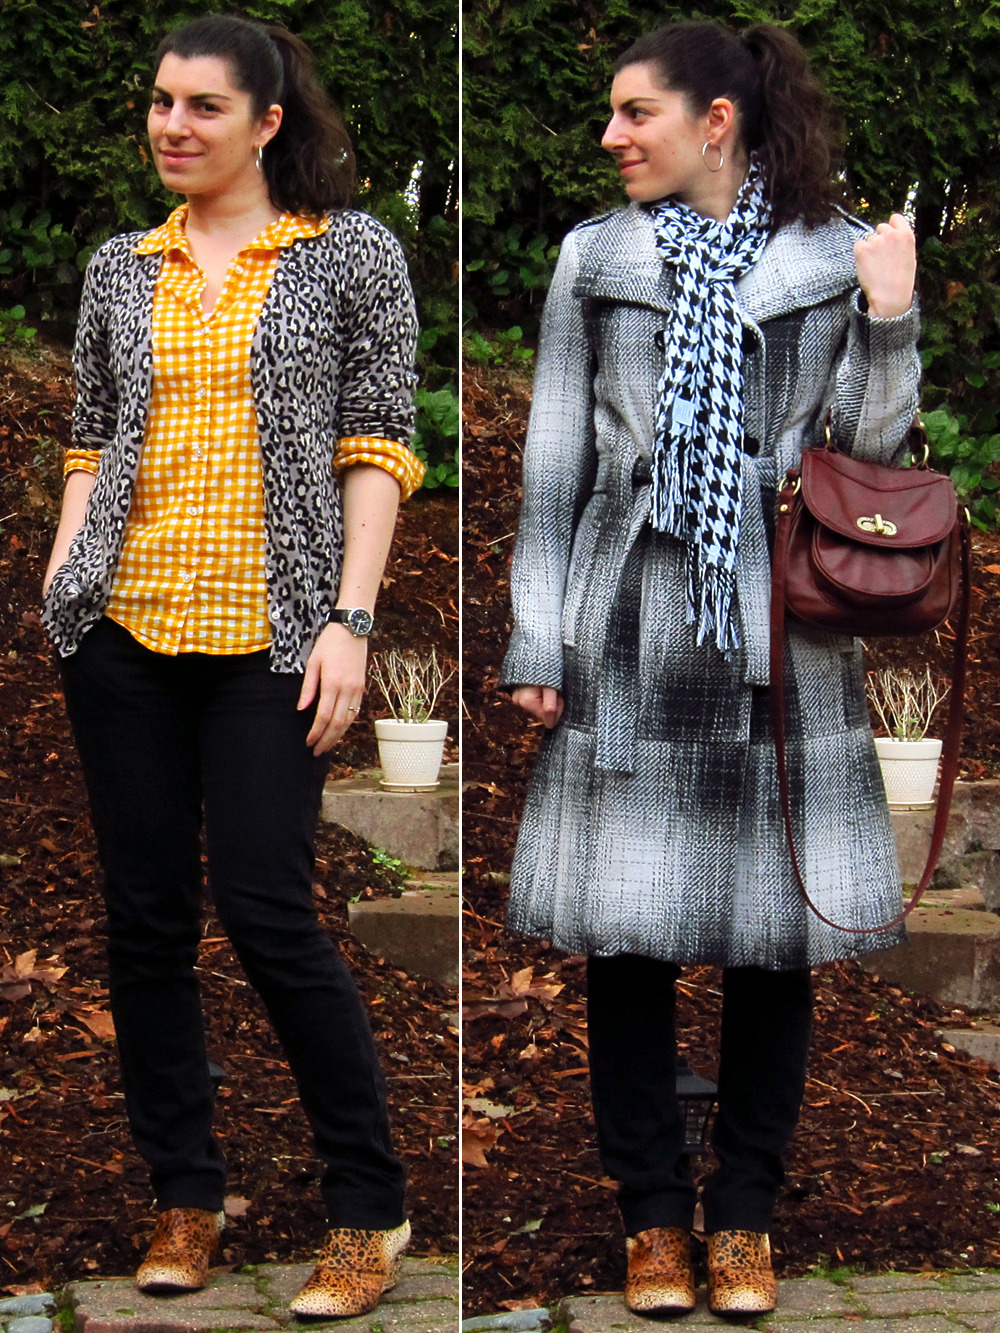 "01.10.2012 [tue] Worn to: work, Type Tuesday Blouse, cardigan: Old NavyJeans: Empyre (via Zumiez)Booties: Matisse ""Nugent"" (via Zappos)Hoop earrings: GNW (via Fred Meyer)Watch: Timex (via Target)Coat: Calvin Klein (via Wilson's Leather)Scarf: giftPurse: Forever 21  Thoughts:Angie's fab pattern mixing blog post this morning coupled with a serious need to wear something cheerful today inspired me to mixmixmix! And I adore how it turned out, so fun! I'm not sure how crazy this is on the Scale Of Print Mix Madness (feels pretty tame to me), but either way this outfit helped cheer me up immensely. I know heavy pattern mixing isn't everyone's cup of tea, and that's OK with me, but I do think this neutral leopard with colorful gingham mix could be a great ""starter mix"" for those who are just getting into print mixing (and it doesn't have to be in two tops, see below!). I would extract the formula as: leopard item + gingham item + neutral item (pulling from the leo print) + fun bootie. I also got a great compliment on this outfit at the pub! While chatting with one of the typographers about business he suddenly stopped, mid sentence, and commented on how much he appreciated that I'd put the two prints next to each other. And he couldn't even see the shoes! Totally made my day ^^ Behind the outfit:As I said above, this outfit started with Angie's pattern mixing post. Her examples show 4 prints that are easy to mix with florals, but as I don't wear florals I was really only looking at the first column and how they mix together since I wear all of those. I didn't realize until later that gingham and leopard were the last two prints in that first column! There are many ways to add print to a printed top: topper (cardigan, blazer, vest), scarf, bottoms (skirt, pants, shorts), belt, shoes. I started looking over my printed tops, and realized that what I SHOULD be starting with is the second patterned element because, for me, those options are much more limited. So I started looking over those options instead; my eyes landed on this leopard cardigan which is folded up on the shelf above where the gold gingham shirt is hanging. I caught the color and pattern combo out of the corner of my eye and just loved it, and of course then immediately wondered how I hadn't noticed it before! From there, the bottoms that came to mind were gray or black jeans because I wanted to echo the neutral shades in the cardigan. I tried the gray first and it was a nice soft look, but when I tried the black the strong contrast really appealed to me so I went with those; it also makes the pattern mix even stronger and bolder looking. I considered several footwear options before trying these booties. First a couple different tall boots, then black flats. As I was reaching for the flats, the cheetah booties caught my eye (again!) and I thought they'd be worth a try with this. And they turned out super fun: with the black dots and cream tips picking up on the leopard above, the orange and yellow being adjacent colors (still on my mind), the cheetah being an extra shot of feline print (mrawr!), and they help make the mix look even more purposeful. They turned out to be my favorite detail of this outfit! I also felt like keeping the pattern mix going with the outerwear, though I do that often: tweedy plaid (coat), houndstooth (scarf), and of course the cheetah (booties)."